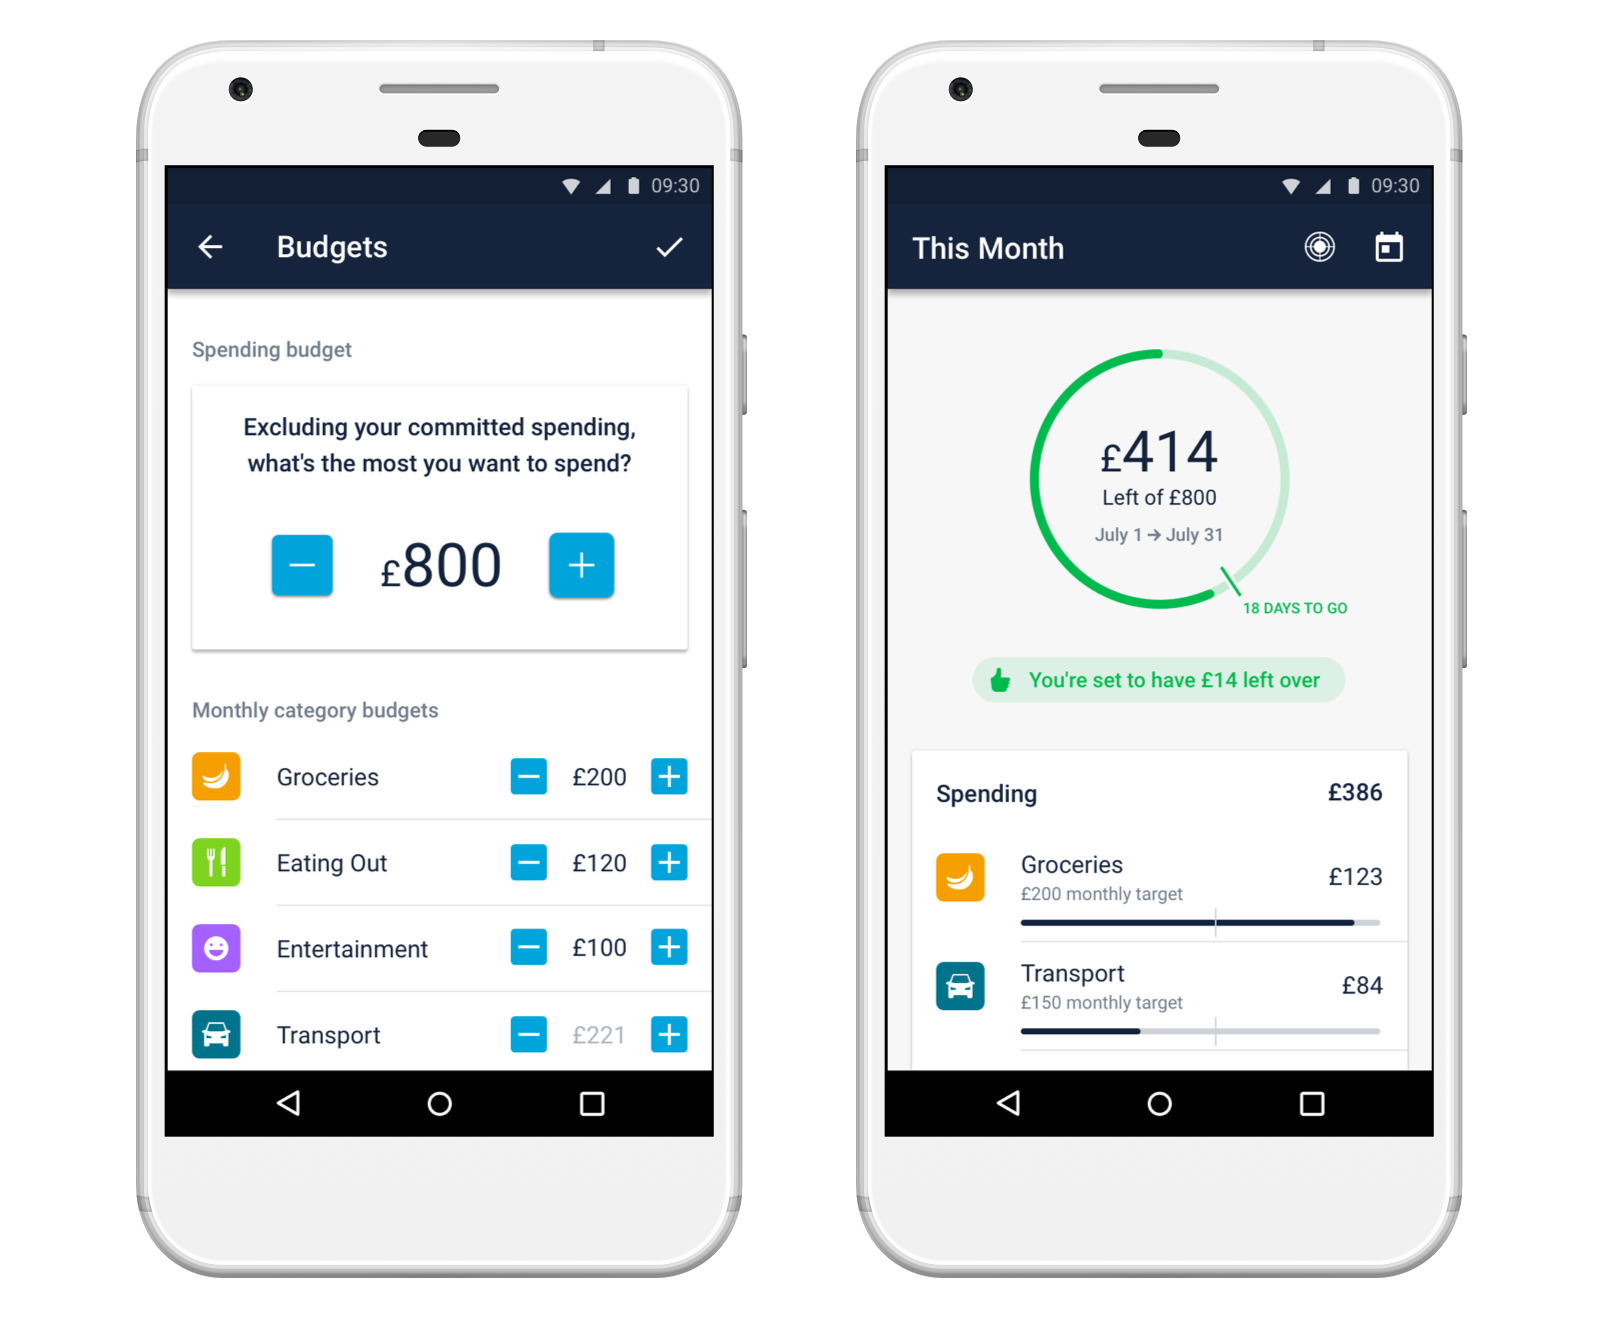 Screenshots showing how to set a spending budget in the Monzo app